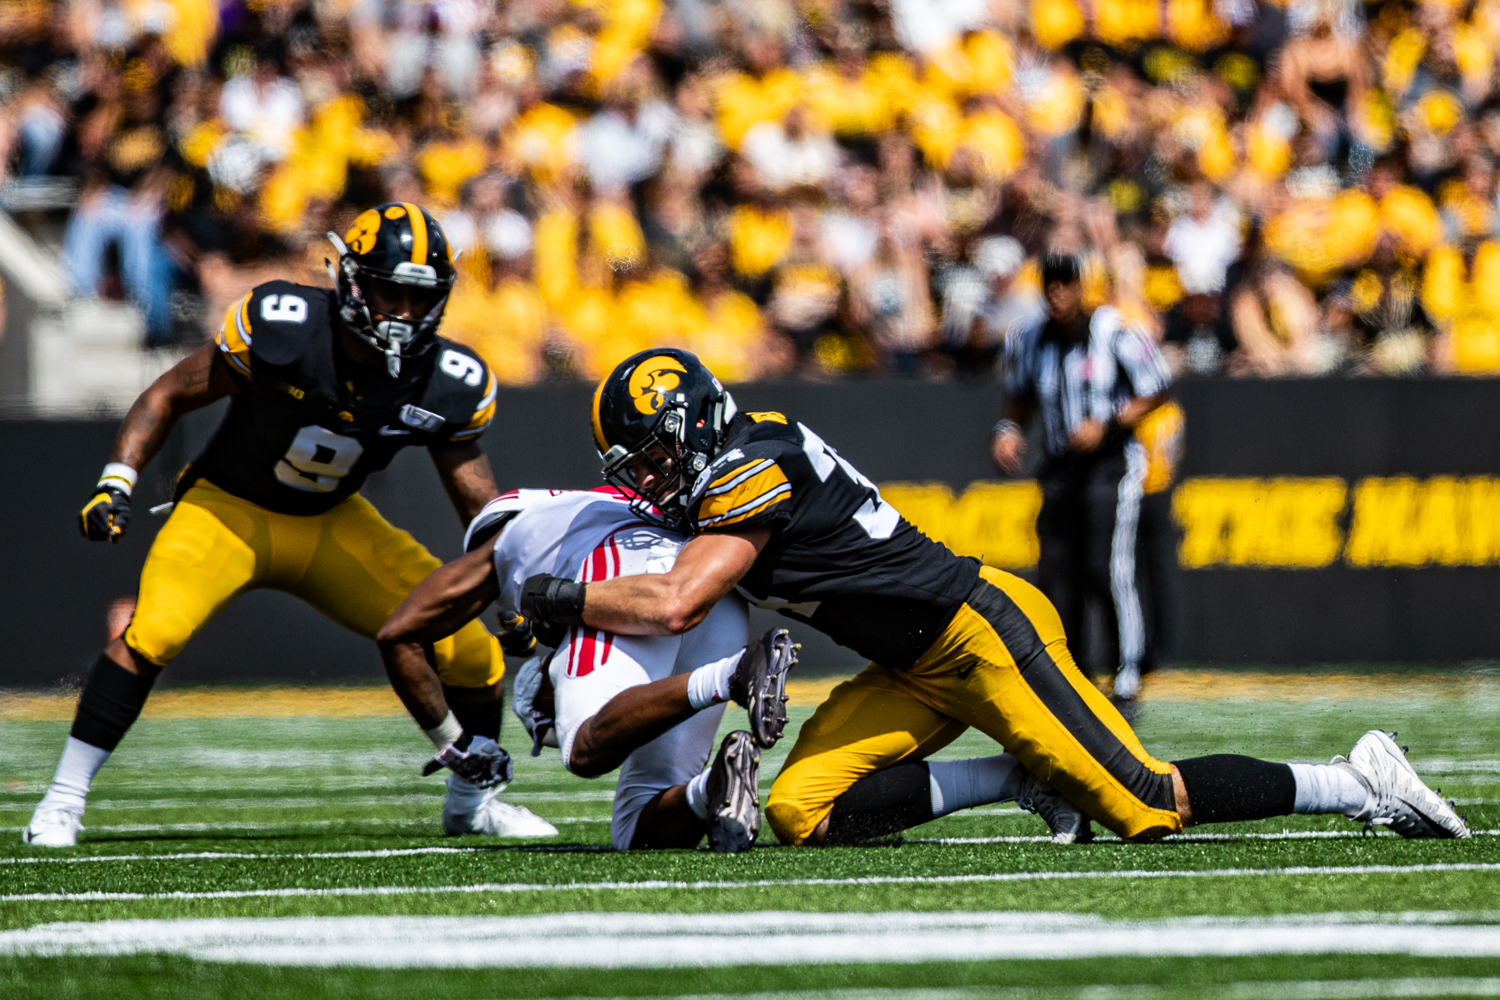 Iowa linebacker Kristian Welch makes a tackle during a football game between Iowa and Rutgers at Kinnick Stadium on Saturday, September 7, 2019. The Hawkeyes defeated the Scarlet Knights, 30-0.